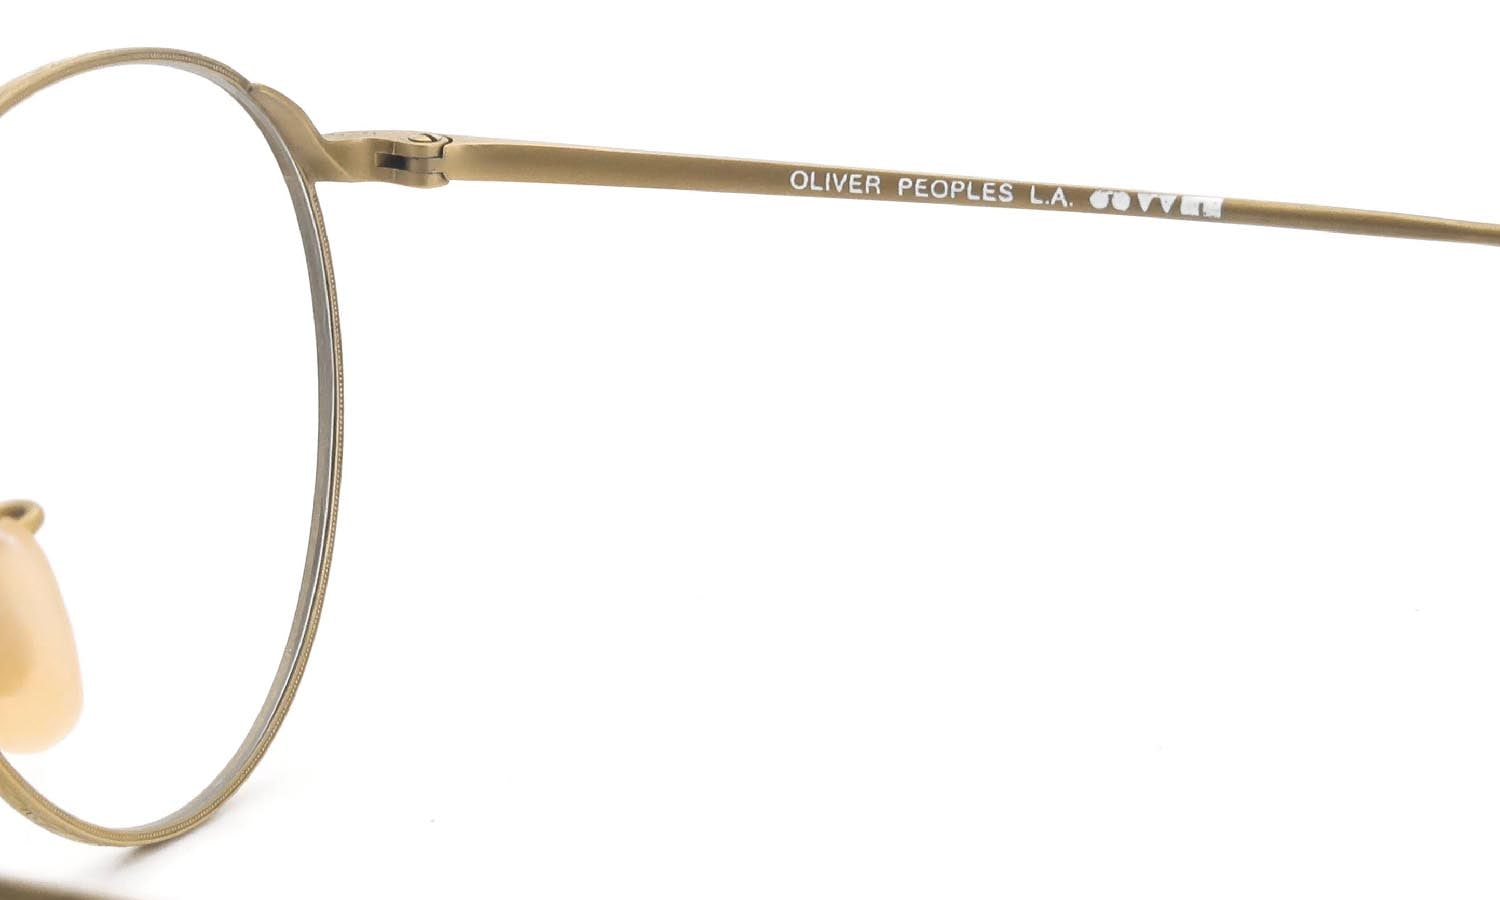 OLIVER PEOPLES 1990's OP-10 NG